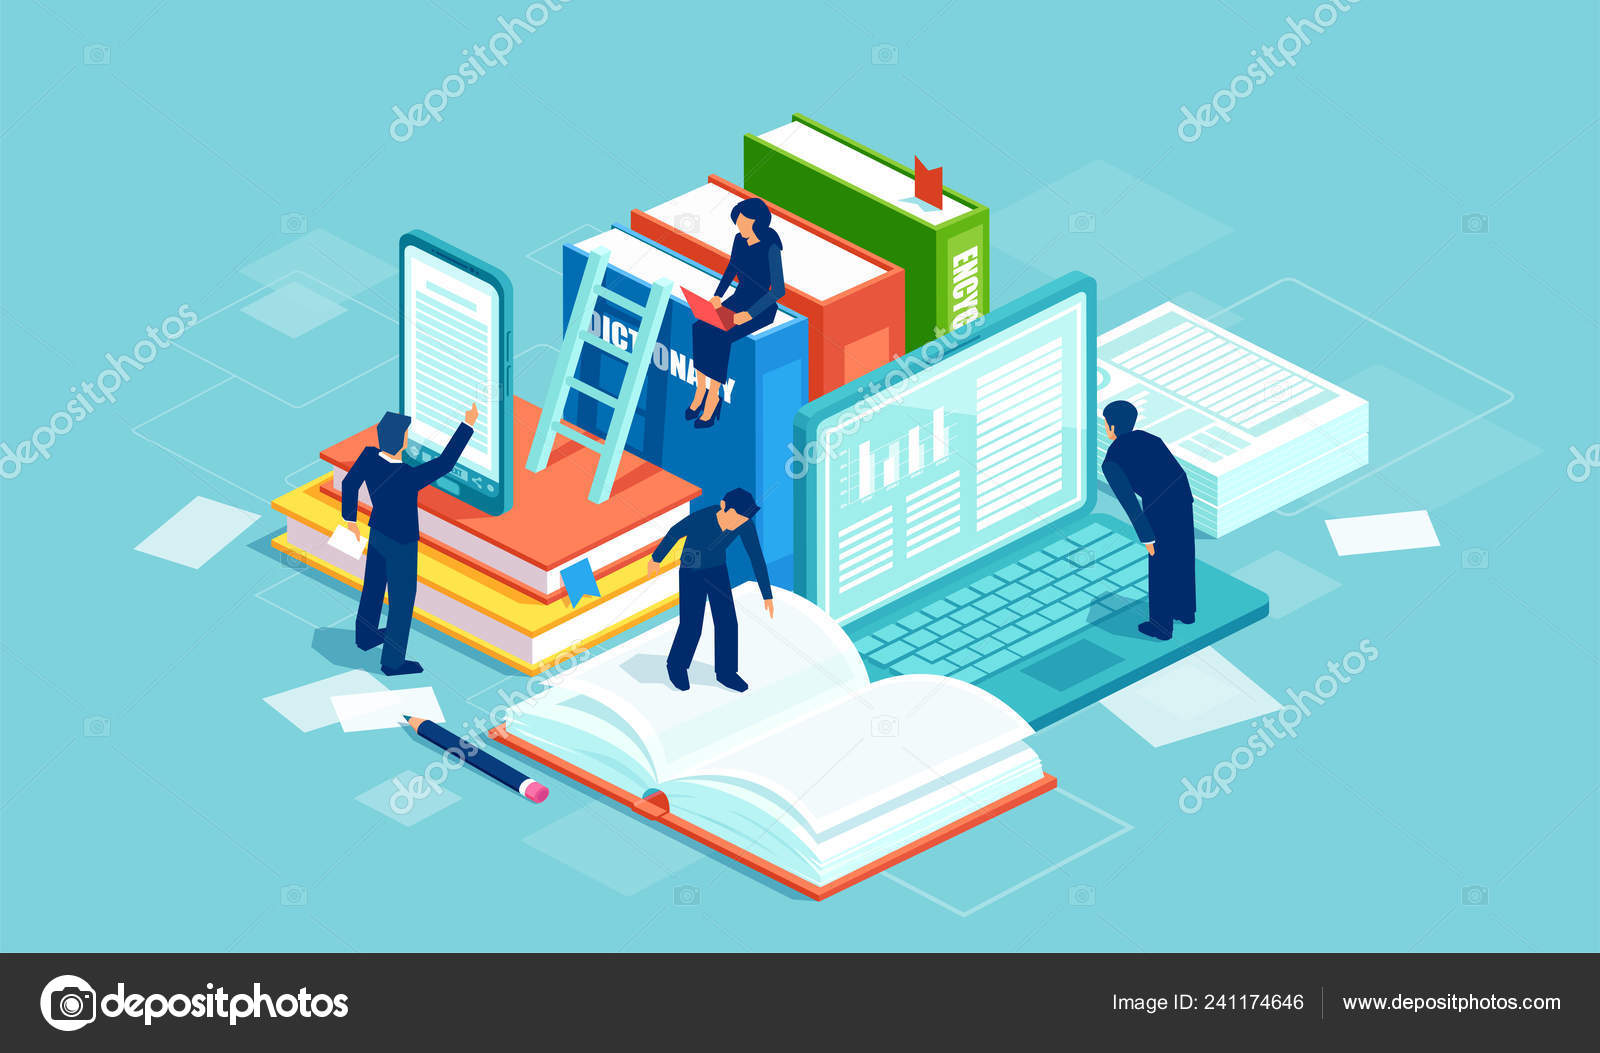 Dictionary Modern Library Web Archive Literature Digital ...